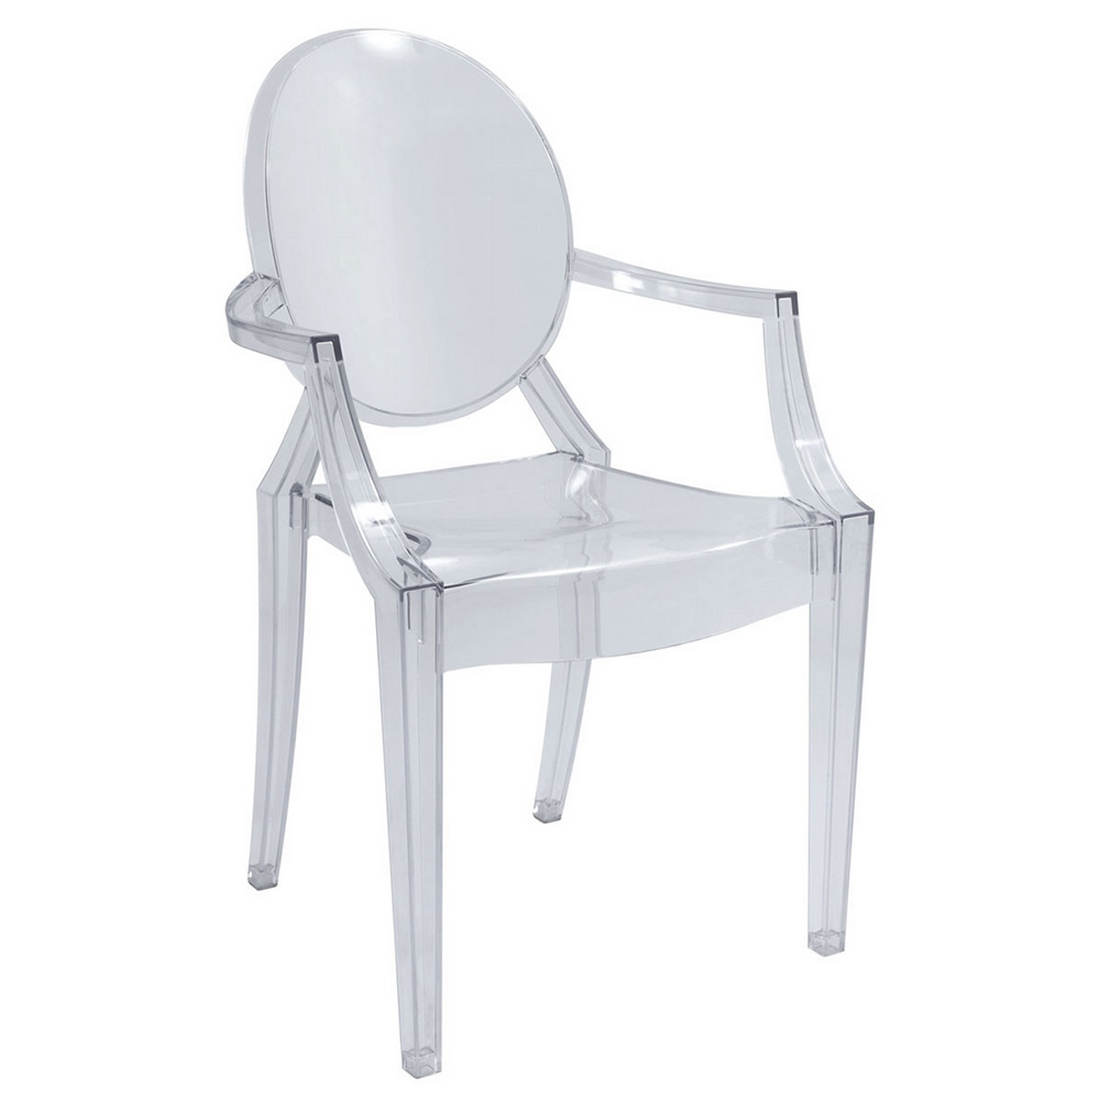 louis ghost chair by kartell the classic reinvented by. Black Bedroom Furniture Sets. Home Design Ideas